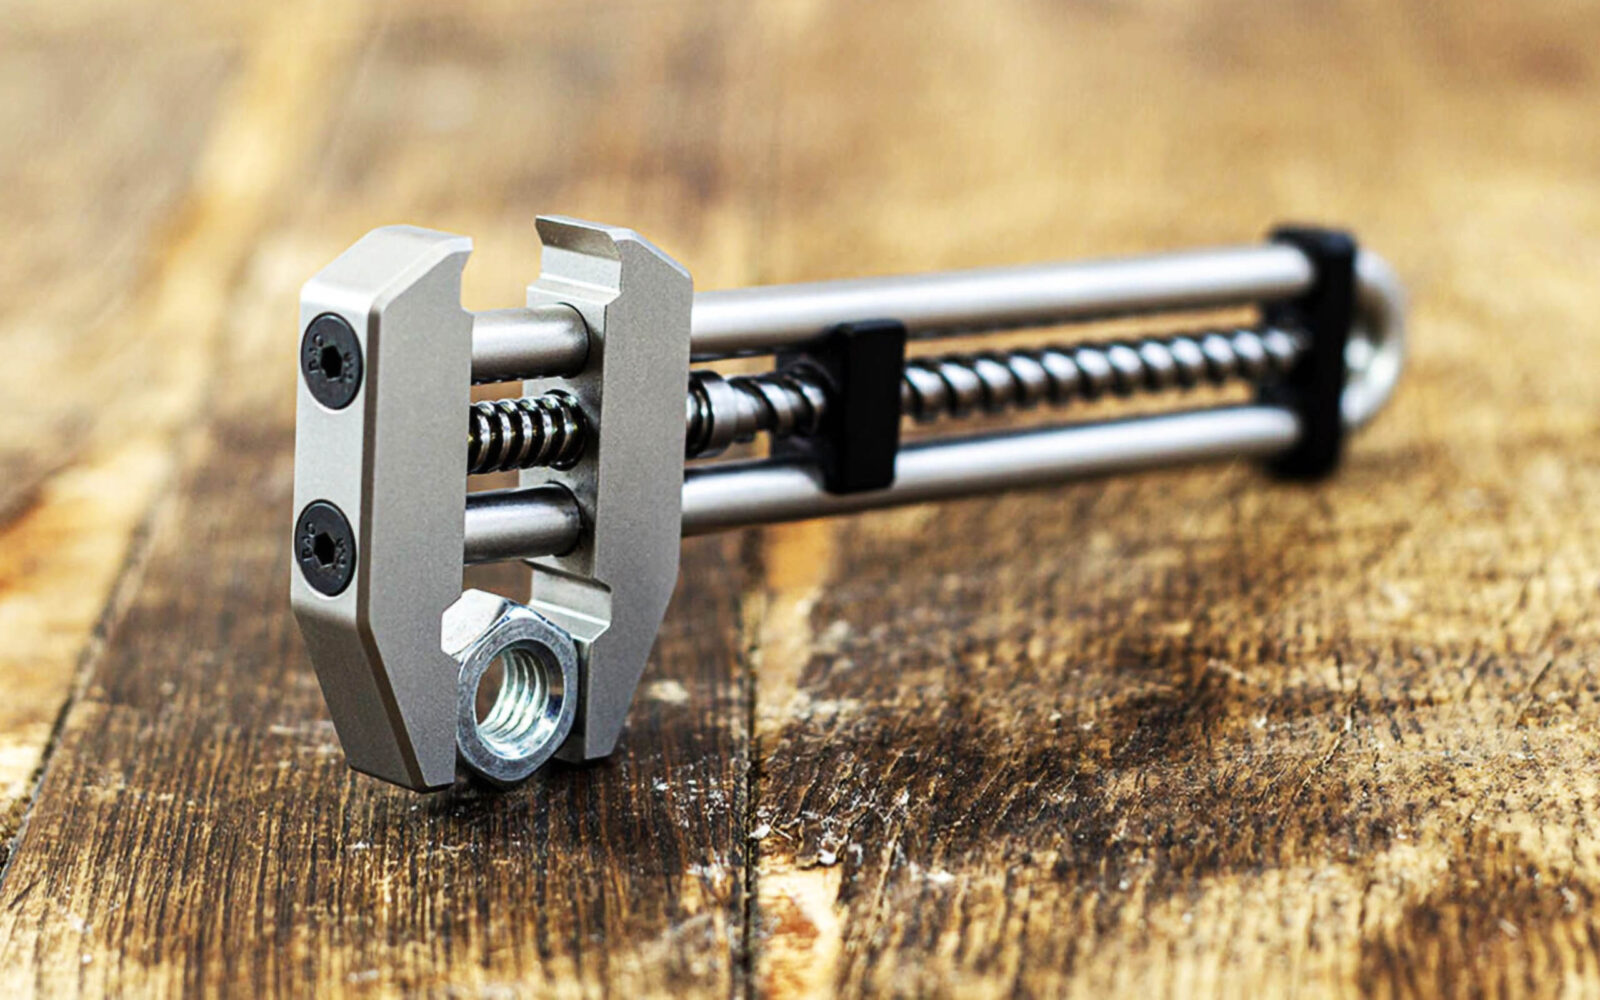 MetMo Grip: The Ultimate Tool Wrench